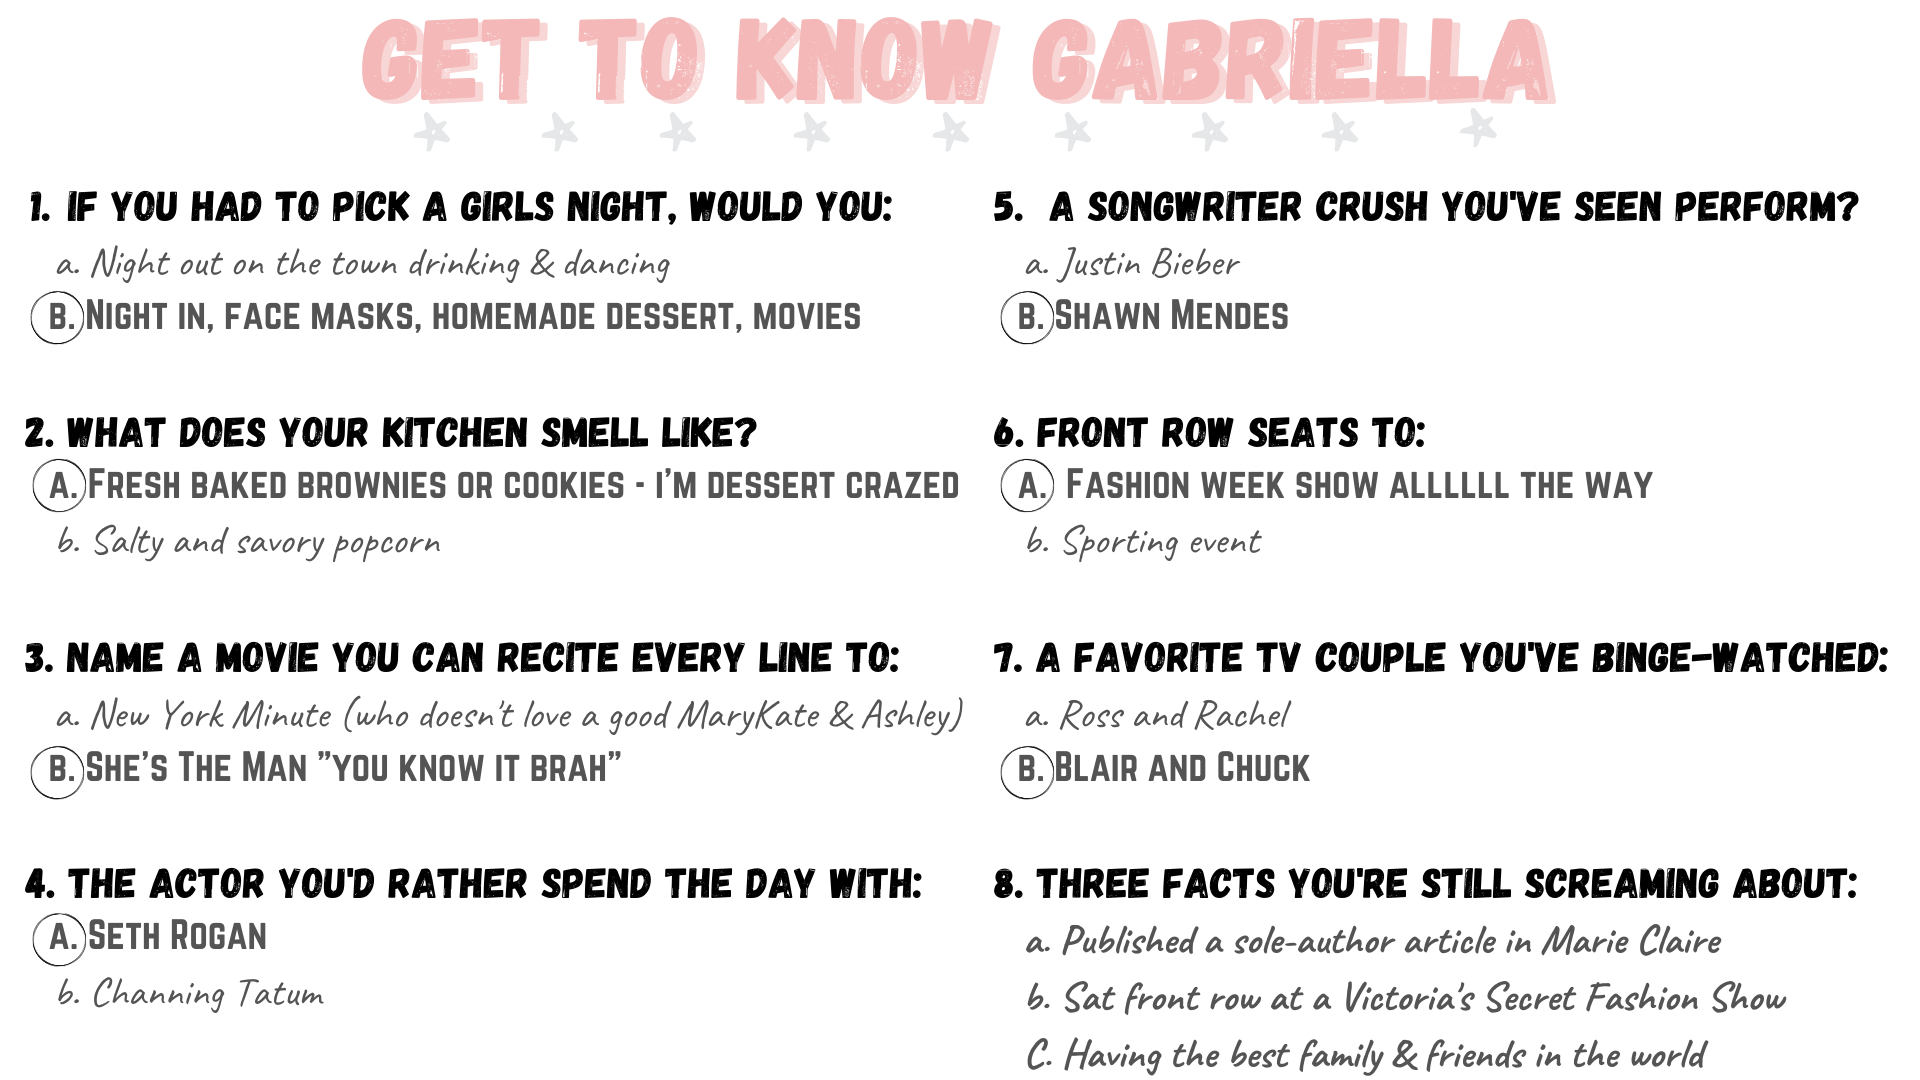 Gab With Me Get to Know Gabriella Image